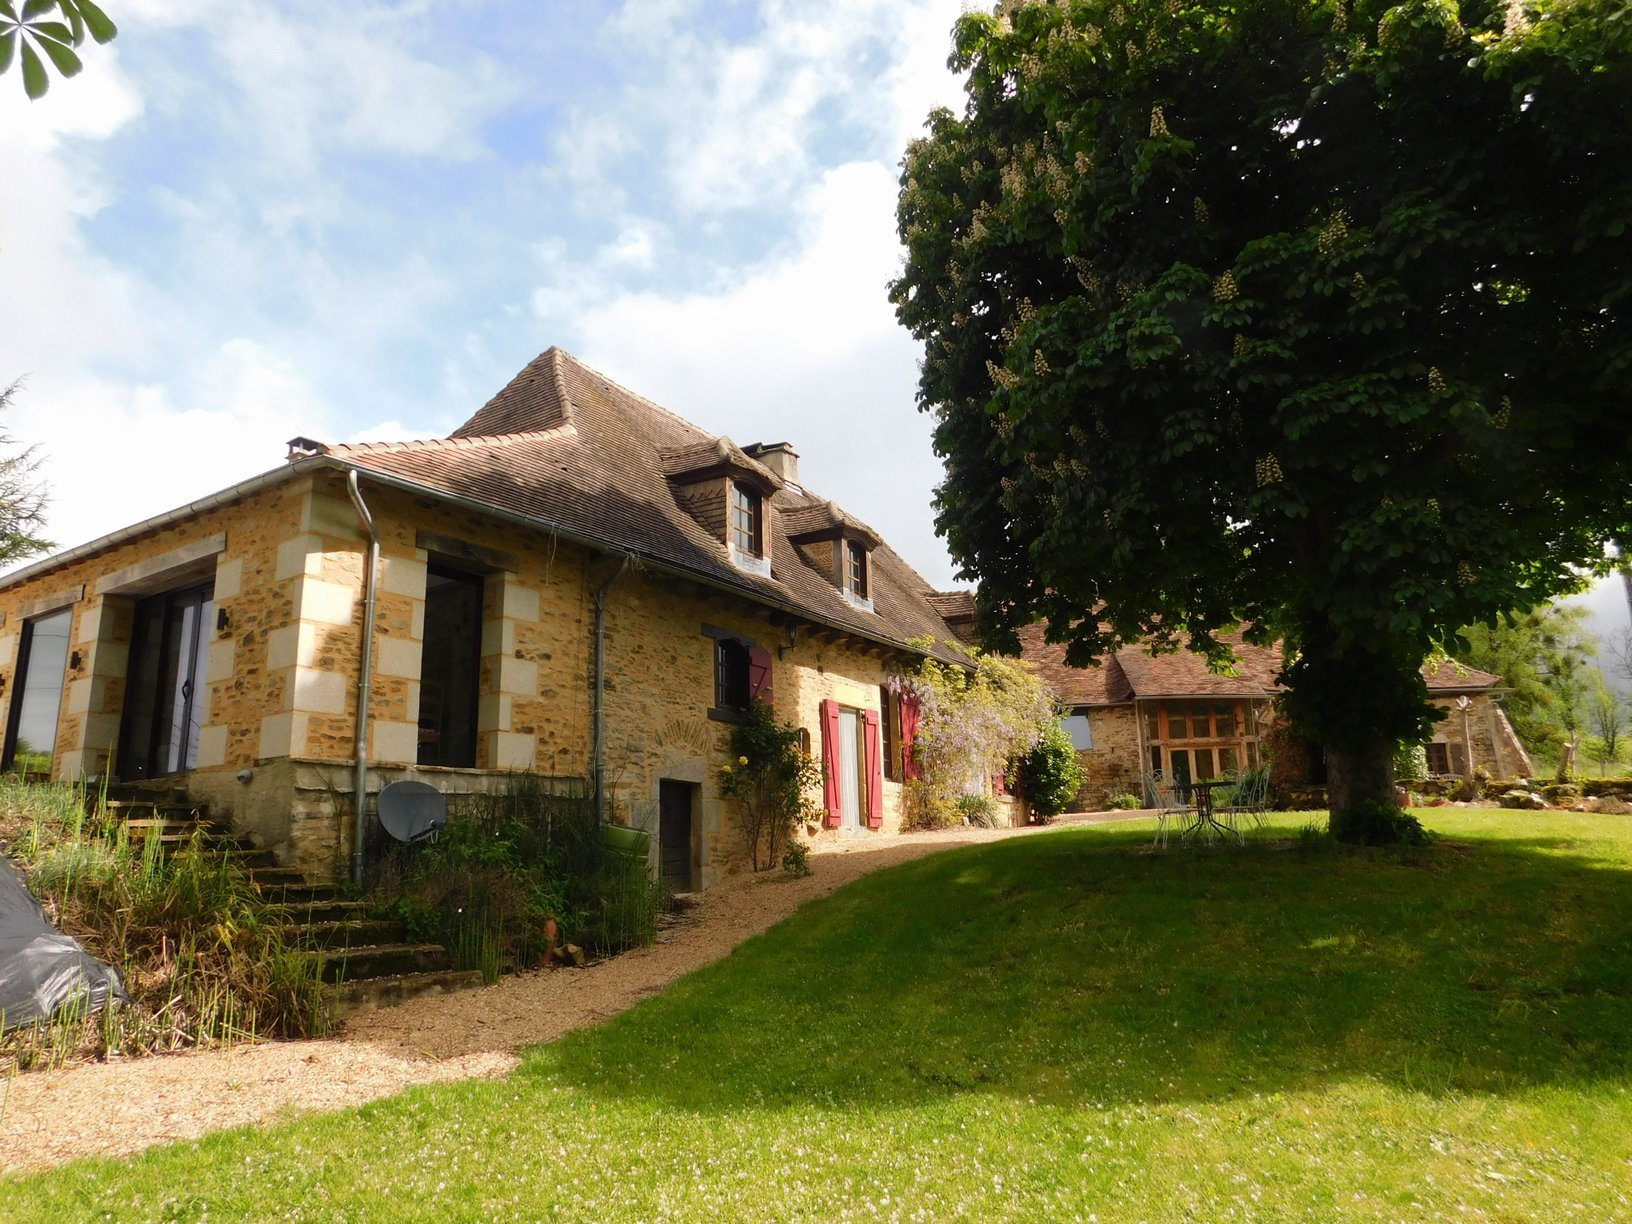 Traditional 18th century farmhouse, two beautiful barns, smallholding on 6.8ha